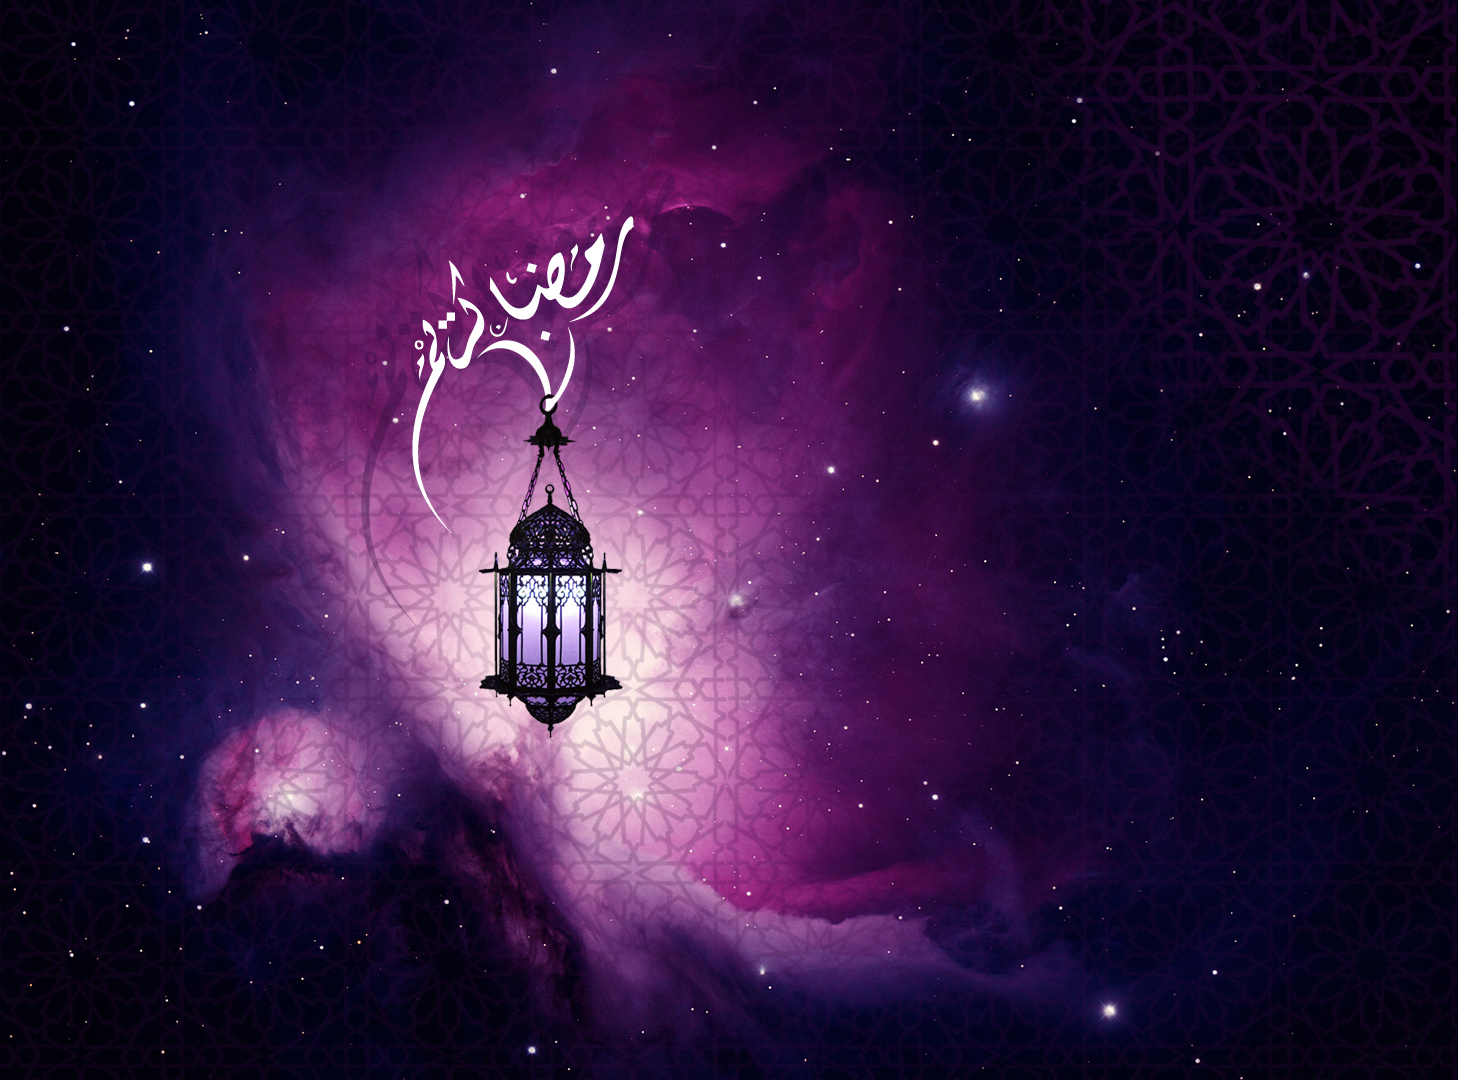 Ramadan wallpapers 2013 20 of the best top islamic blog for Best home wallpaper 2013